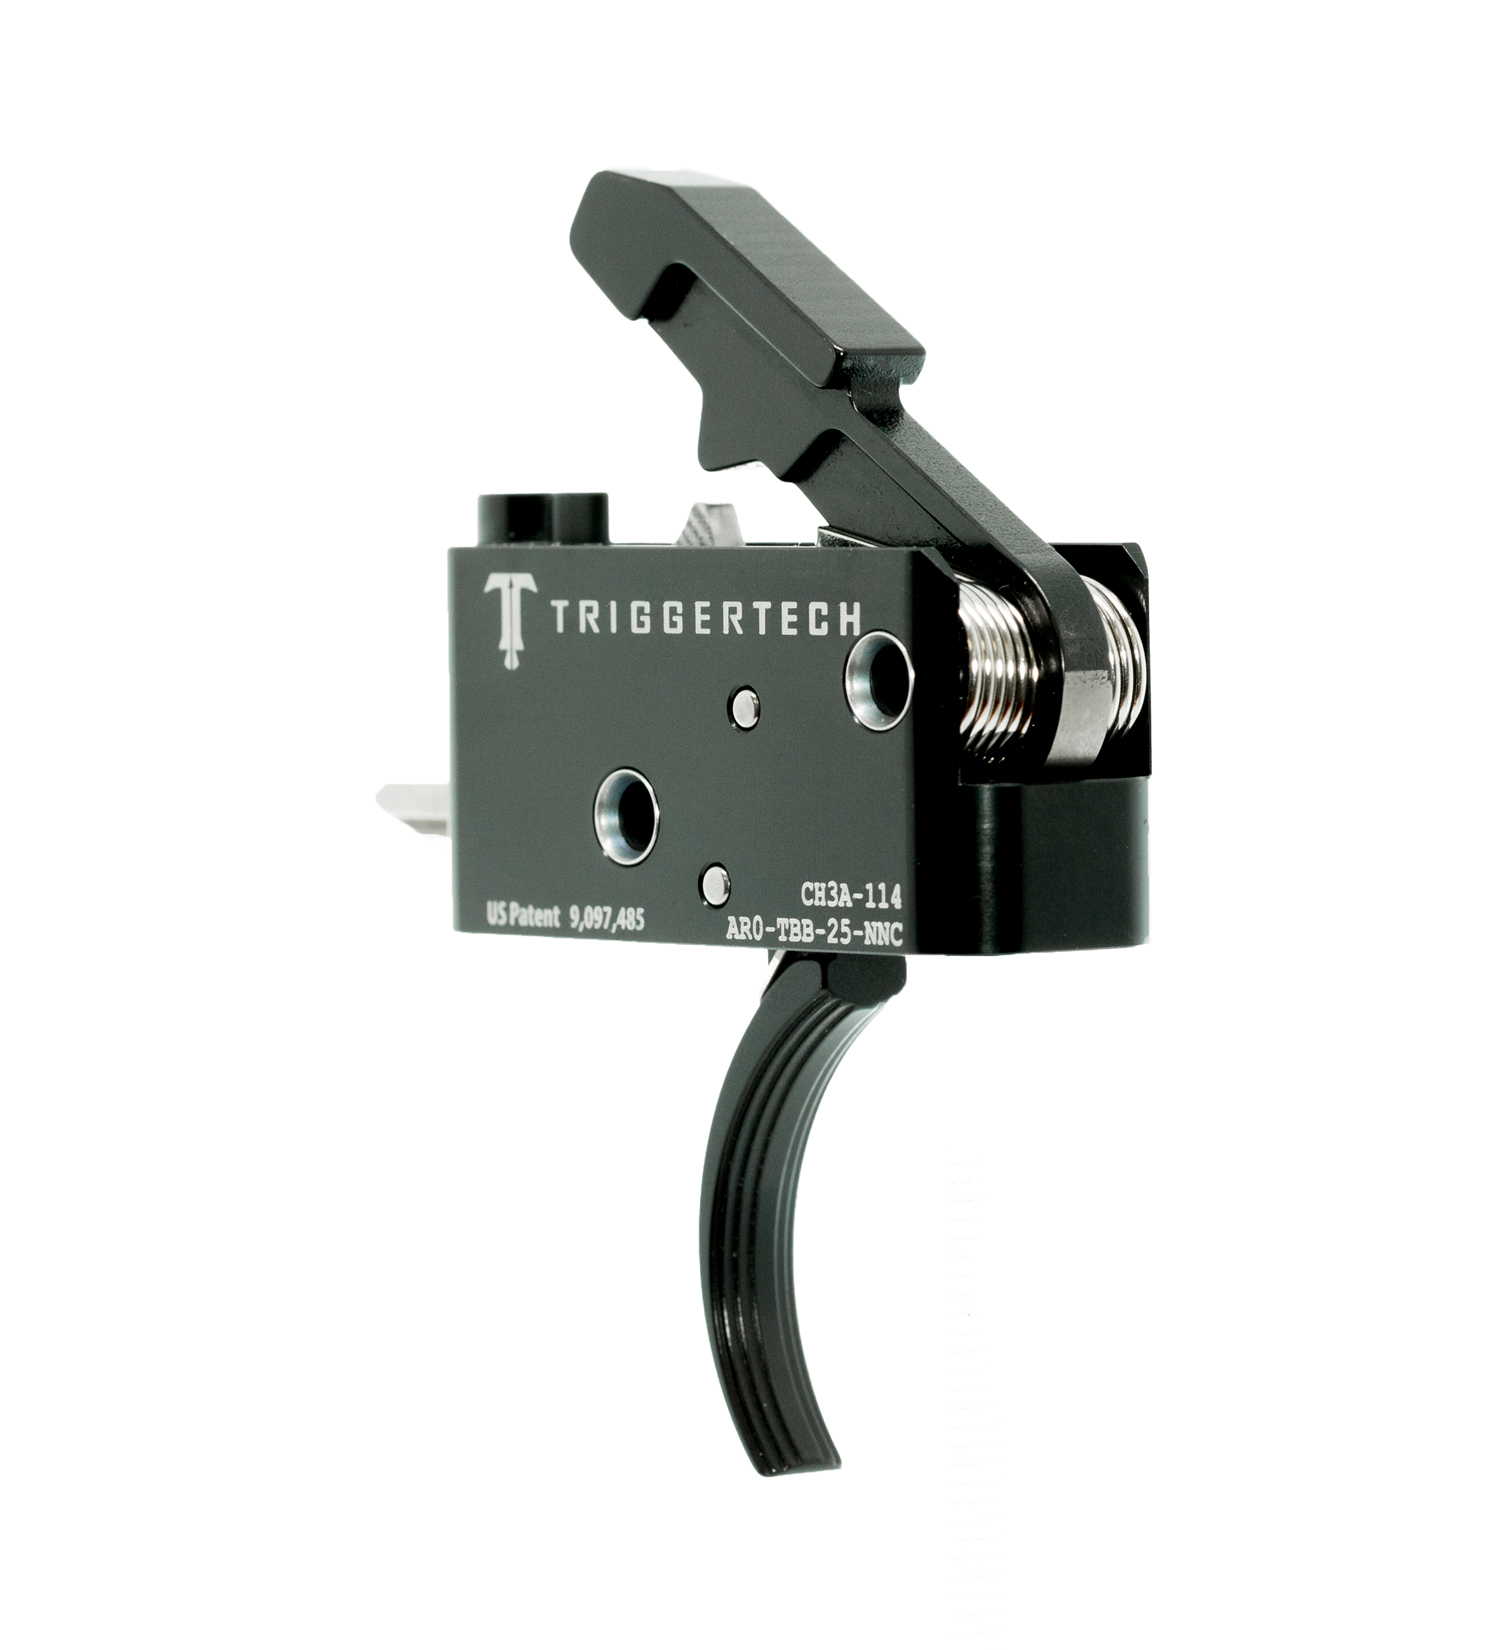 TriggerTech Adaptable AR Trigger PVD Curved